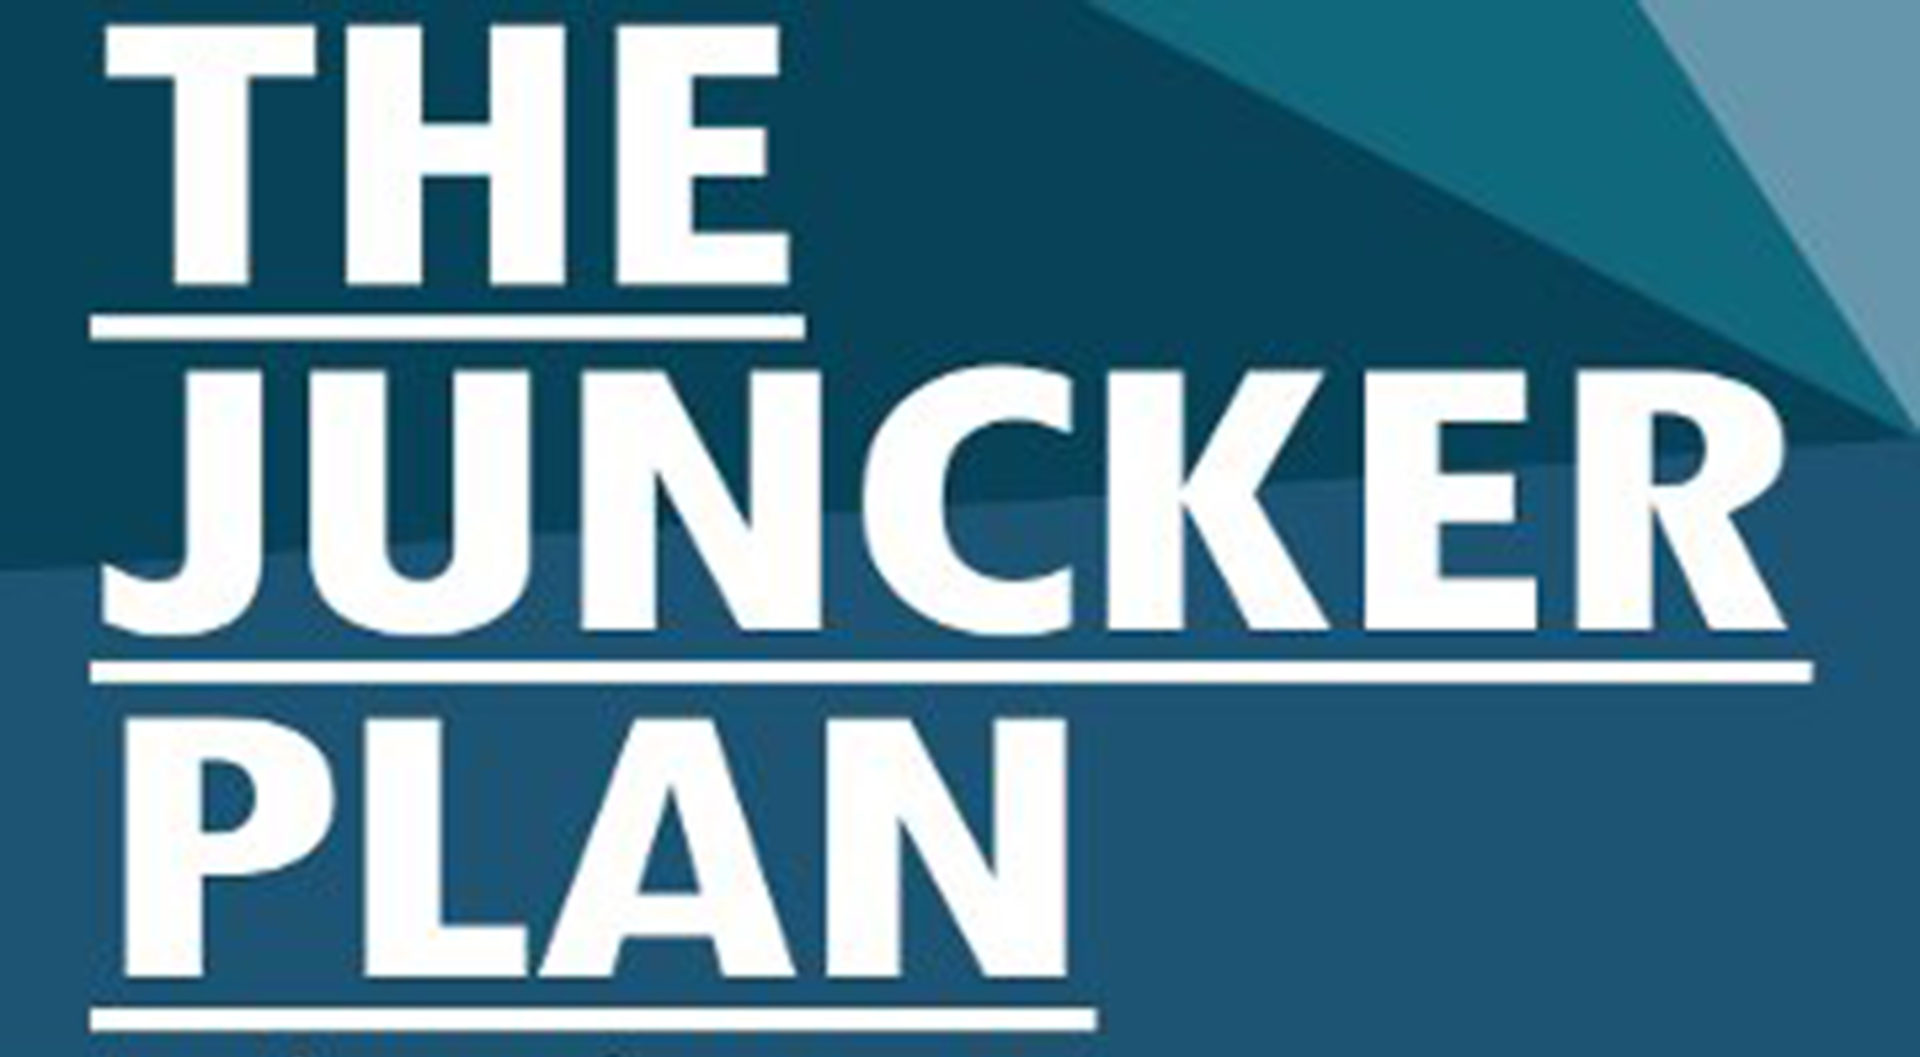 The Juncker plan